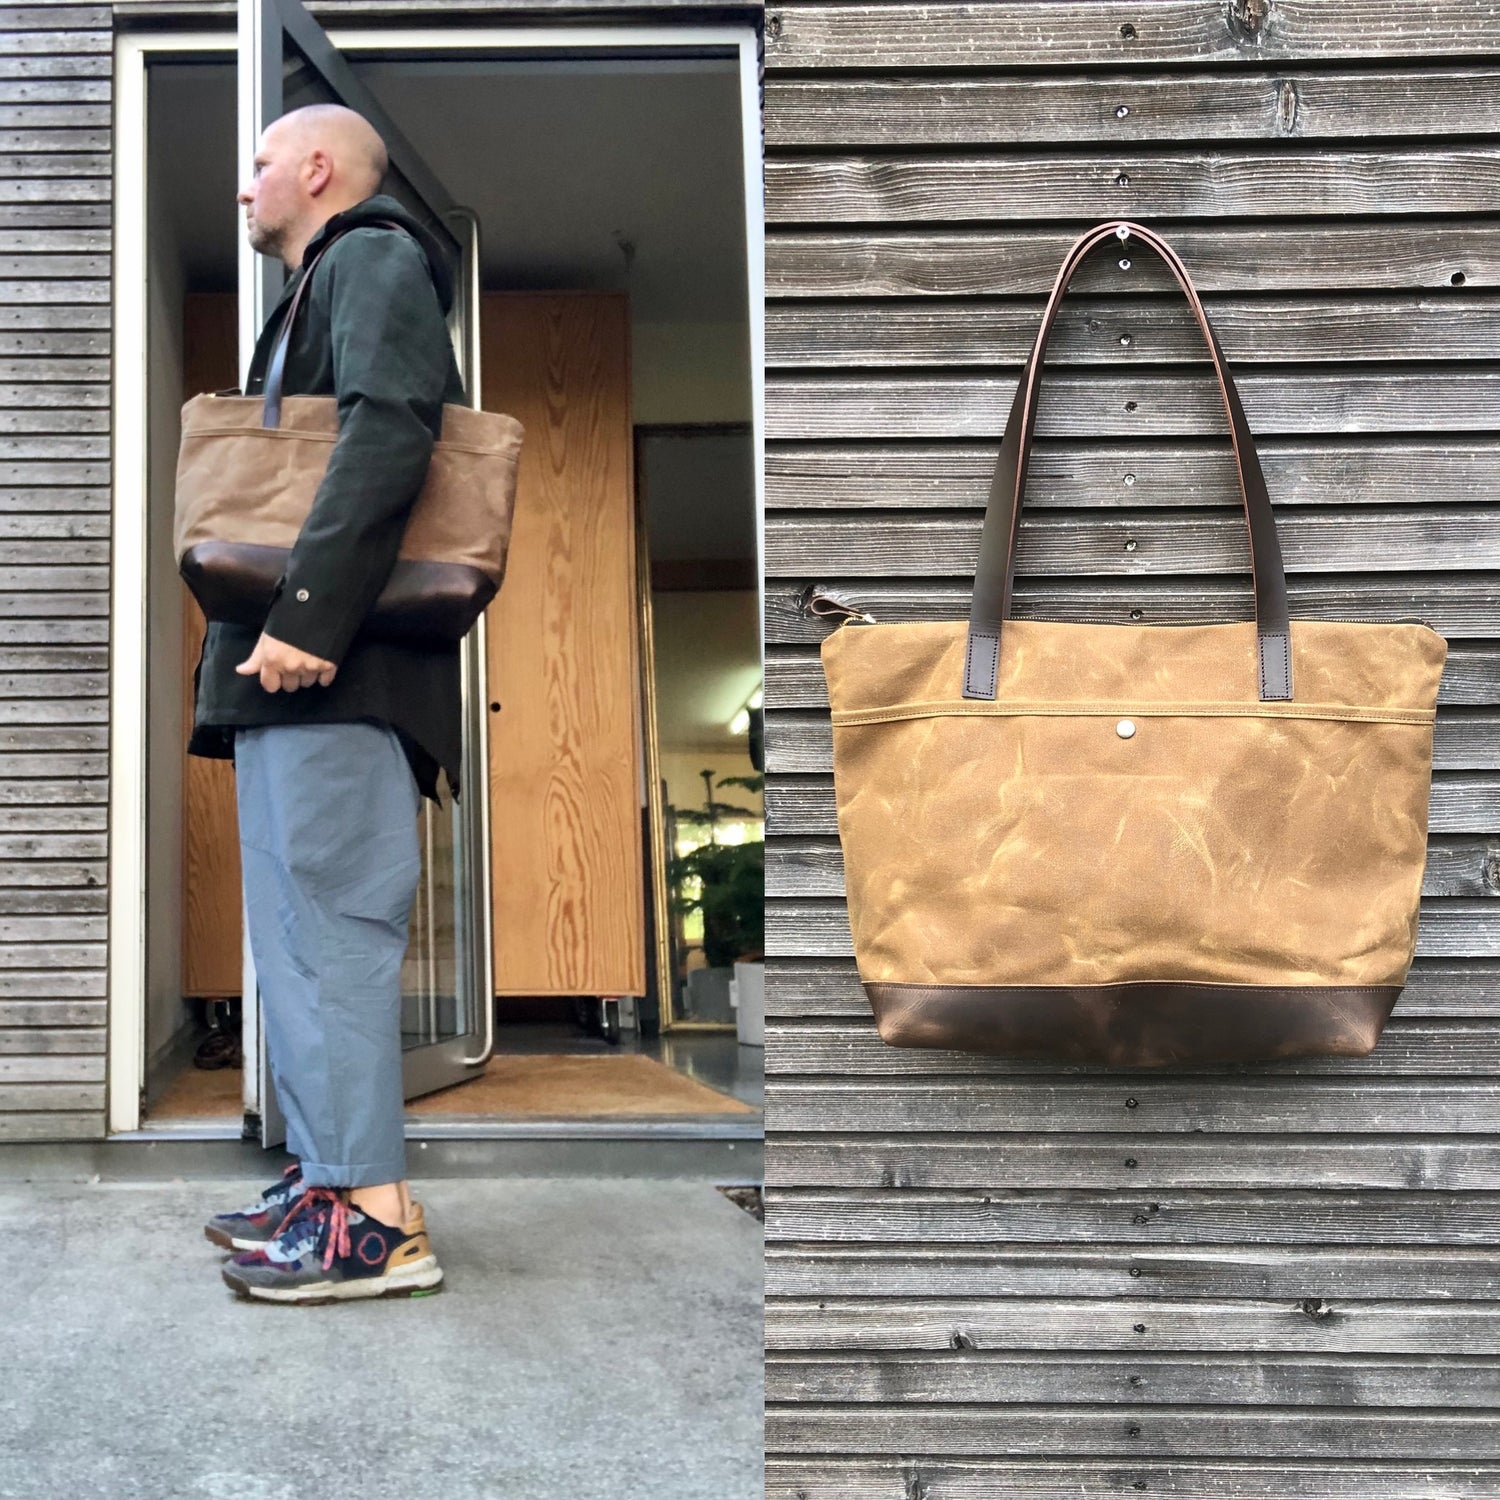 Image of XL waxed canvas tote bag with leather handles and bottom / canvas market bag / laptop bag COLLECTION